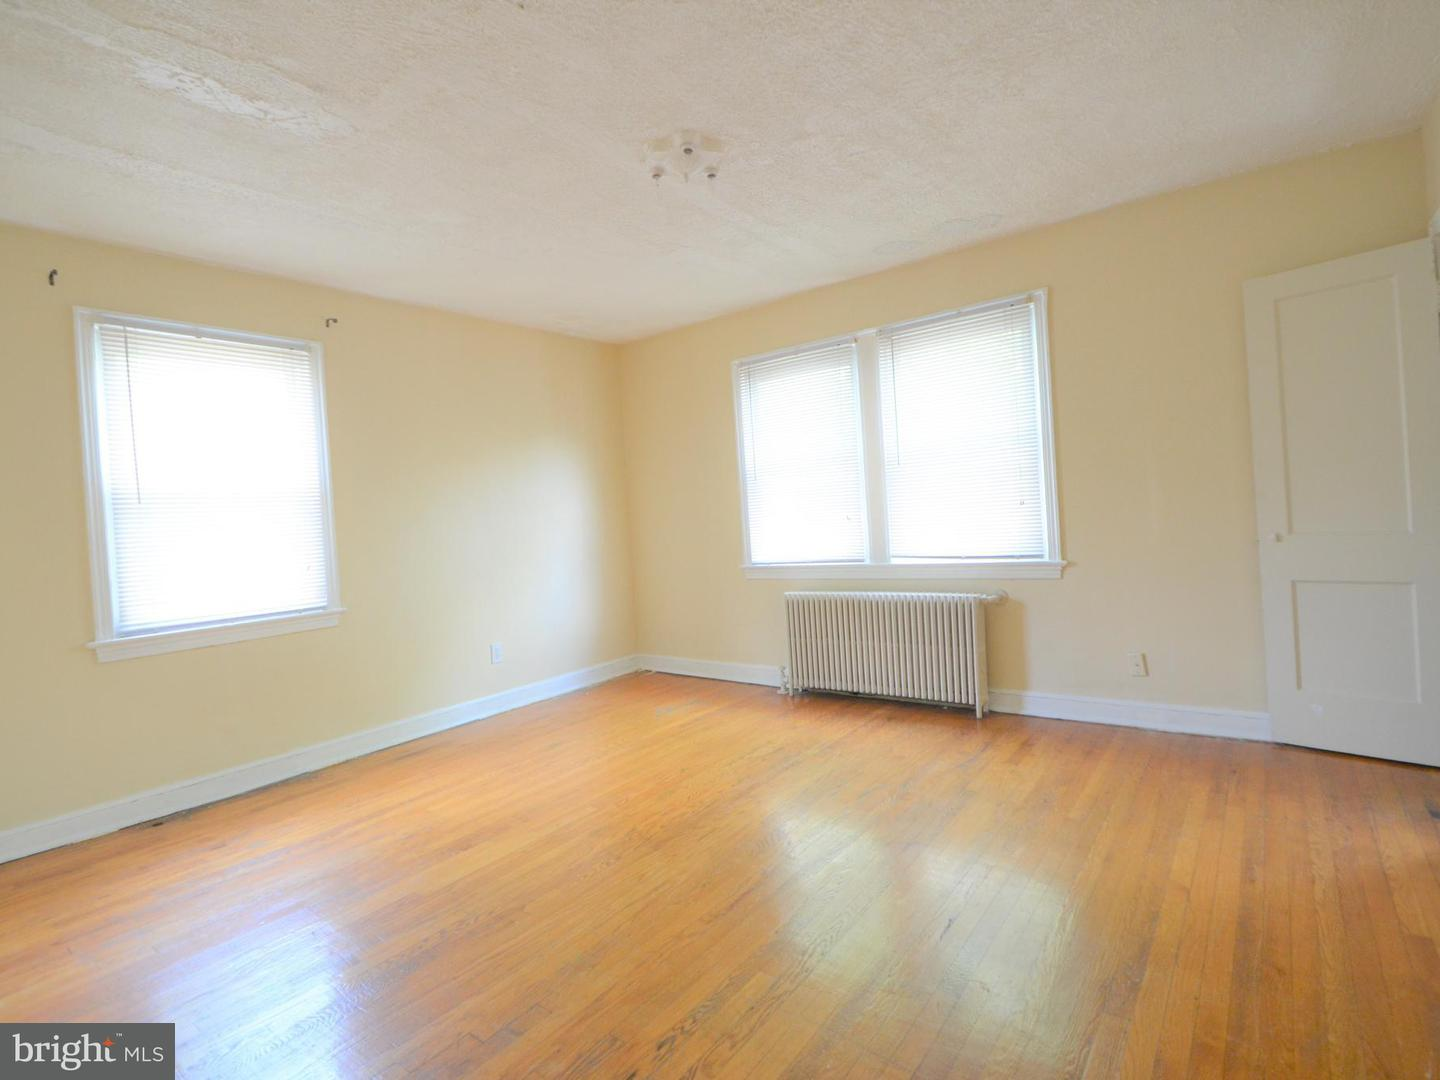 Other Residential for Rent at 1424 Staples St NE #4 Washington, District Of Columbia 20002 United States